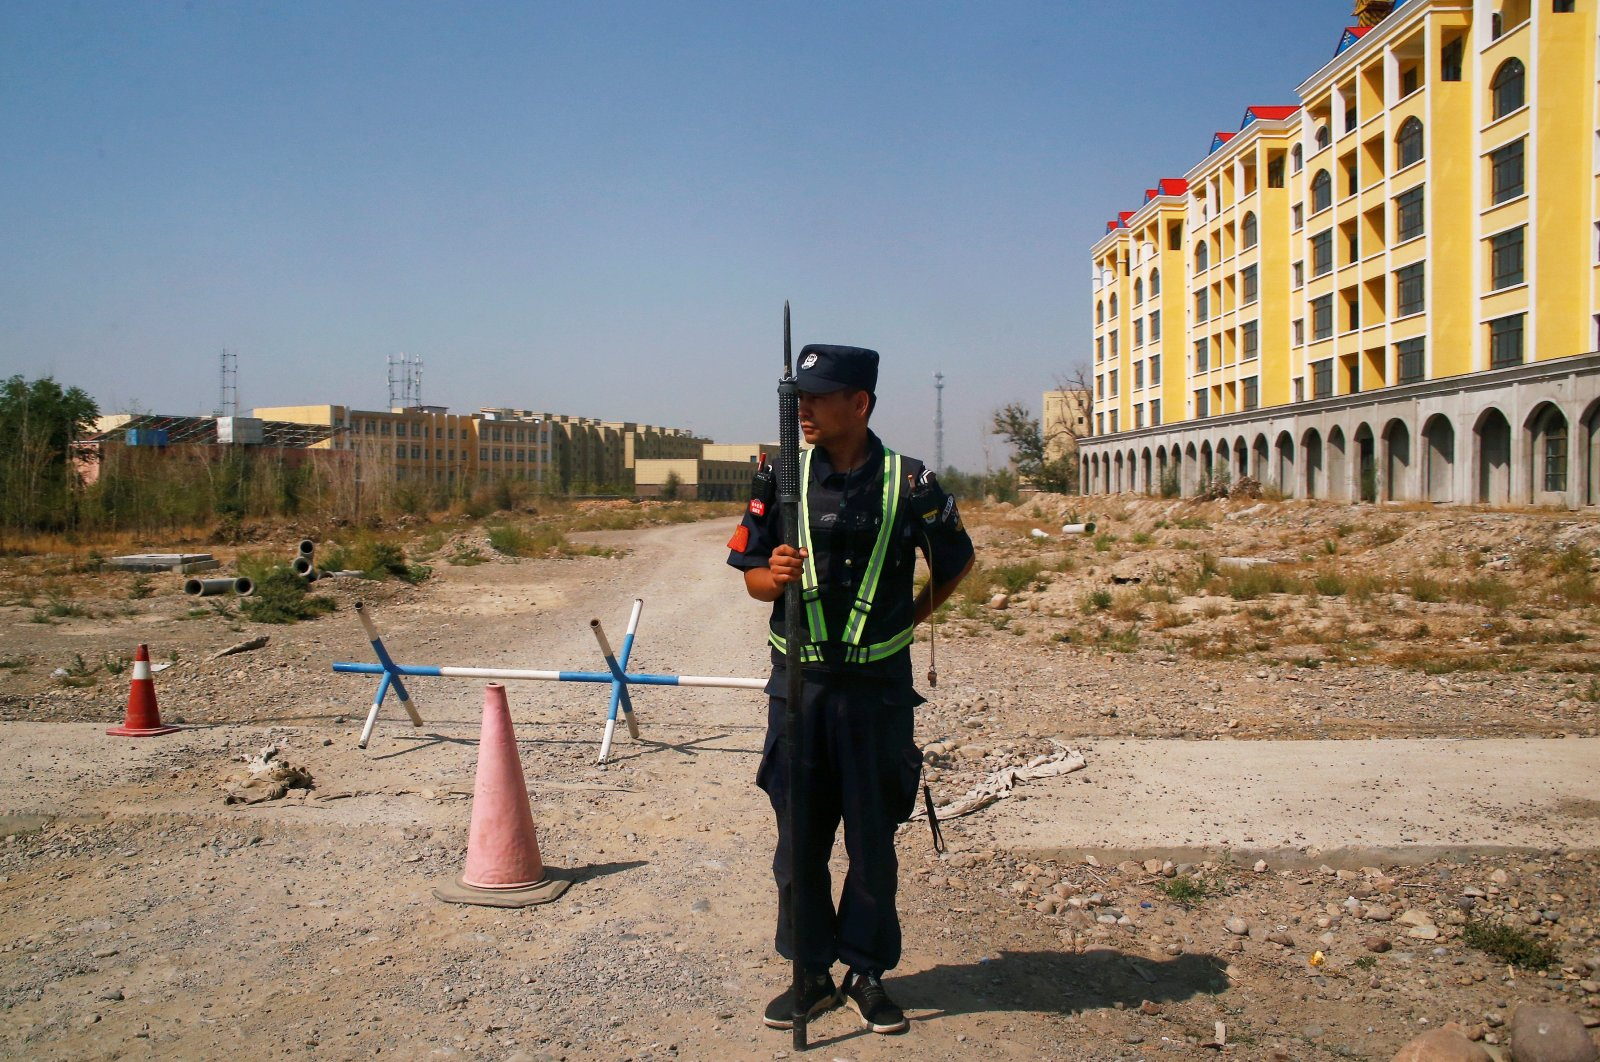 A Chinese police officer takes his position by the road near what is officially called a vocational education center in Yining in Xinjiang Uighur Autonomous Region, China, Sept. 4, 2018. (Reuters Photo)